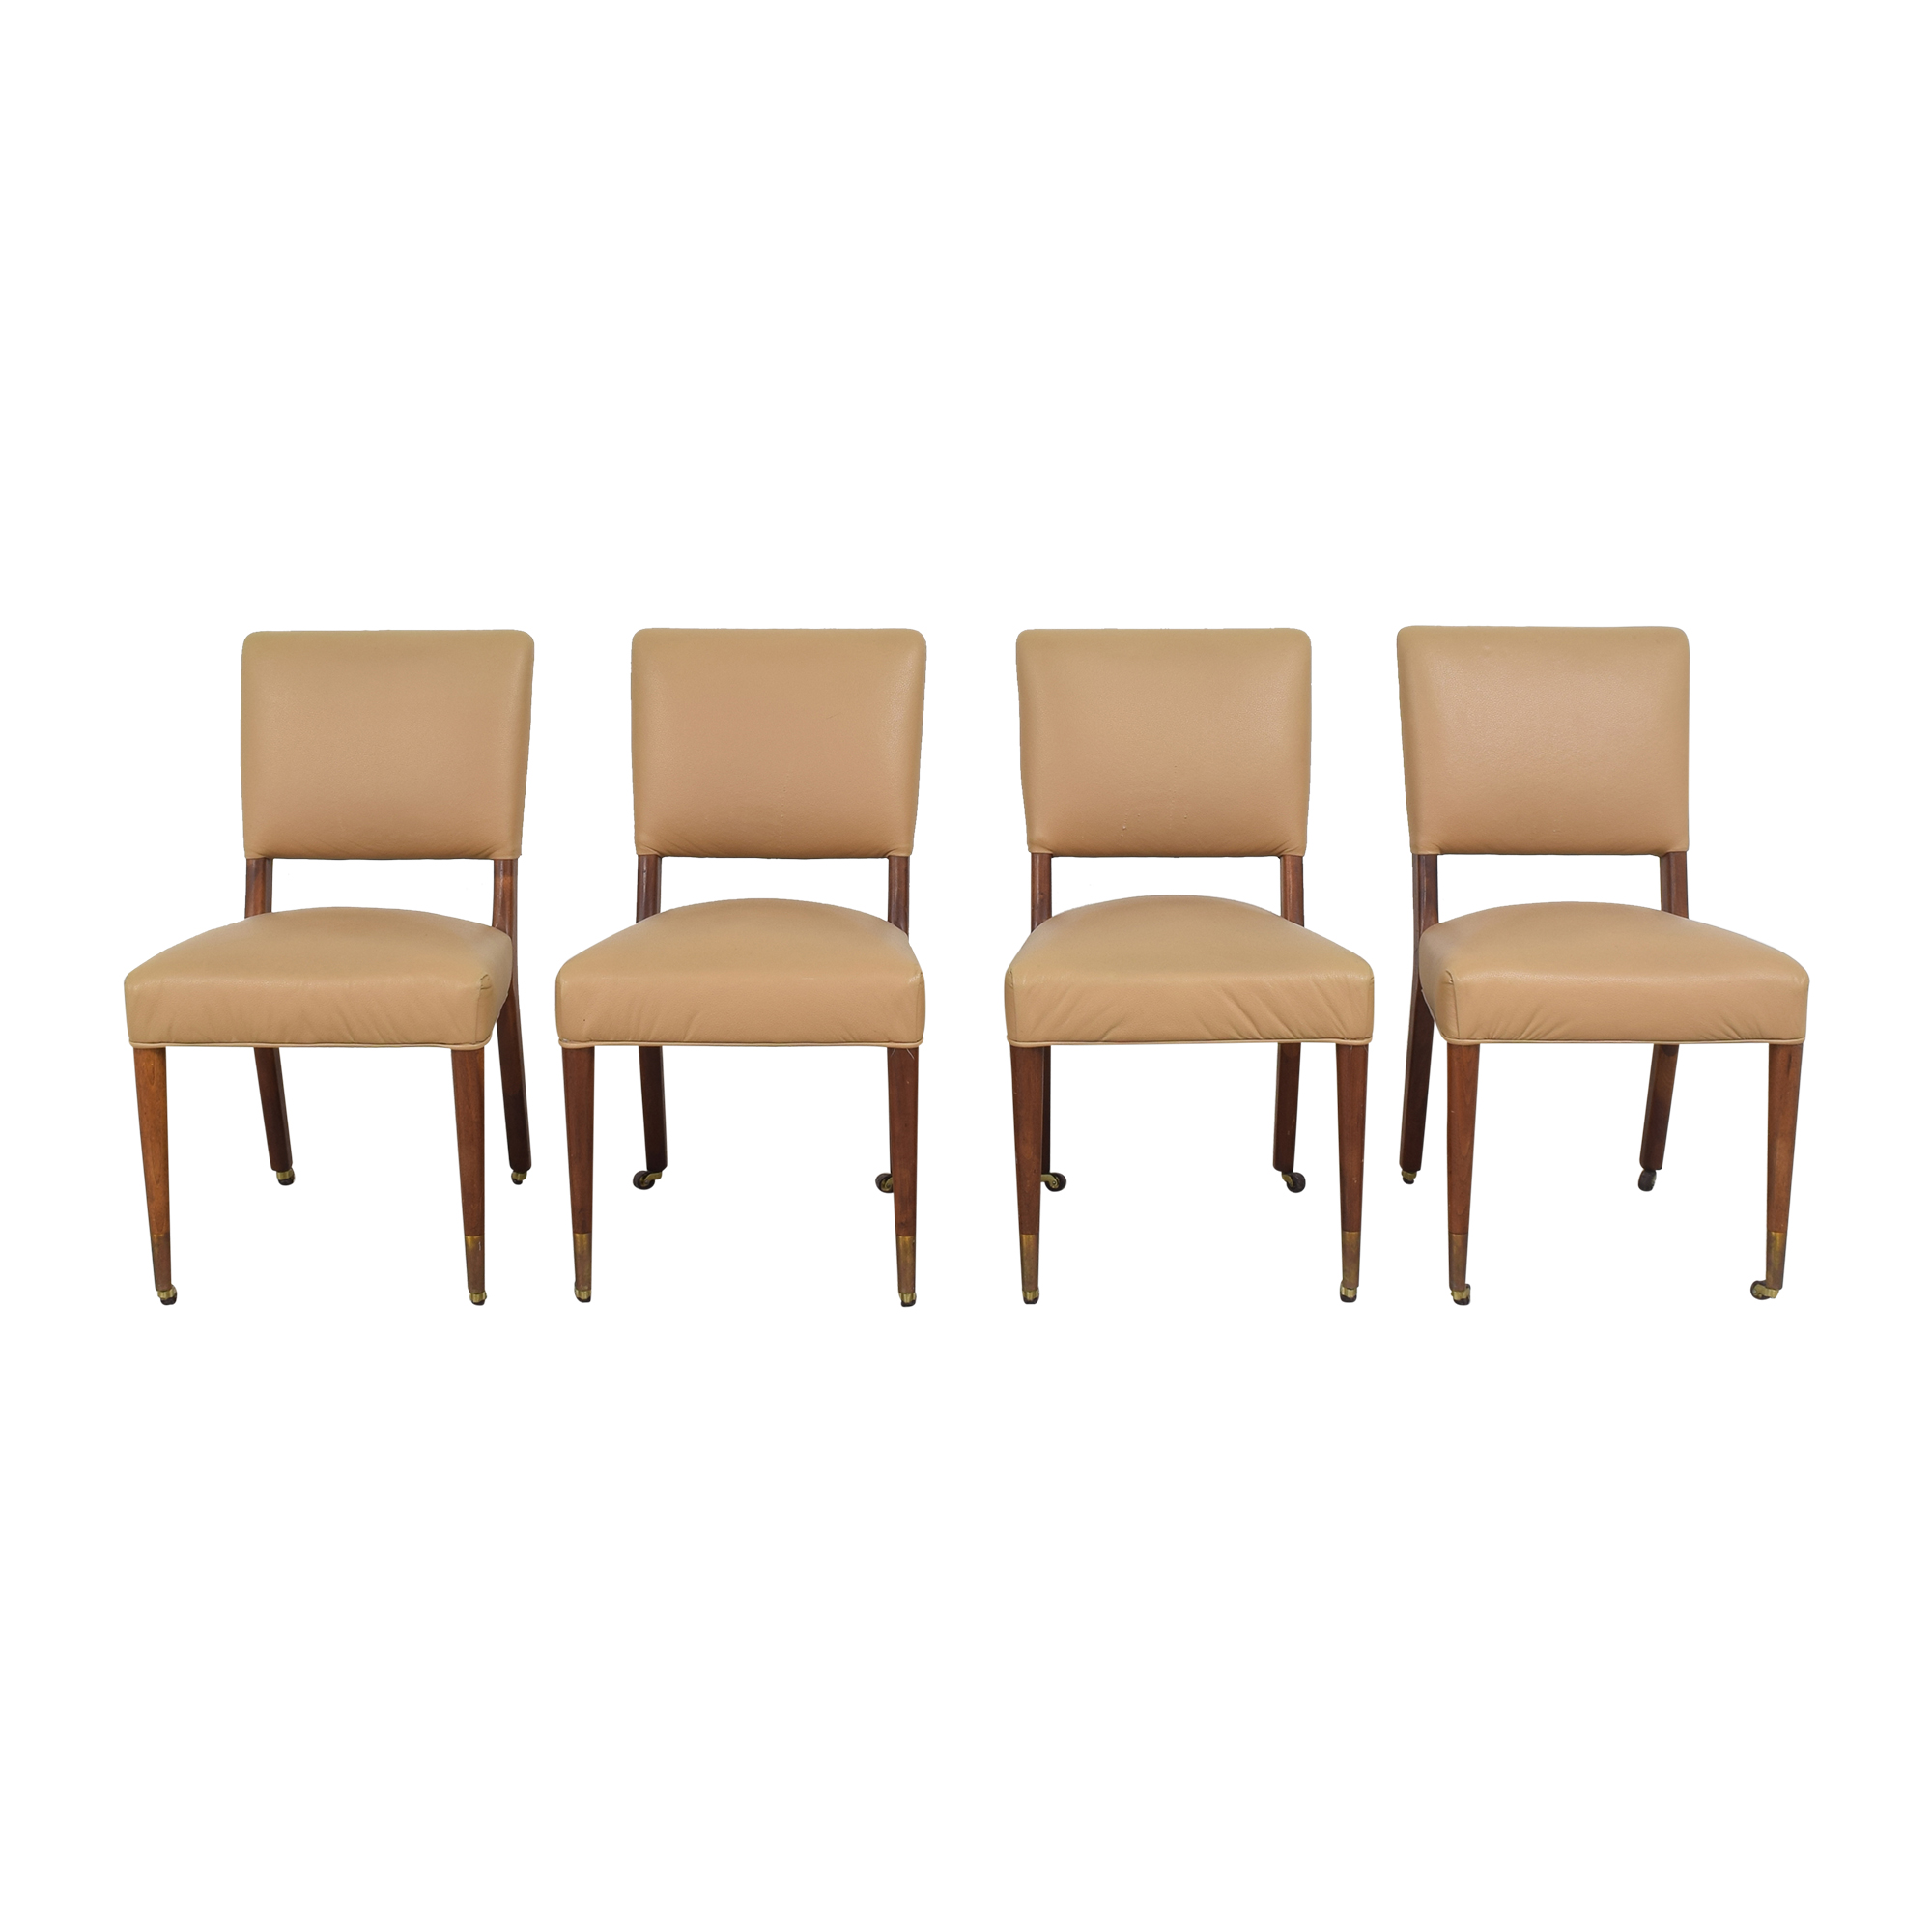 Upholstered Dining Chairs on Casters Dining Chairs